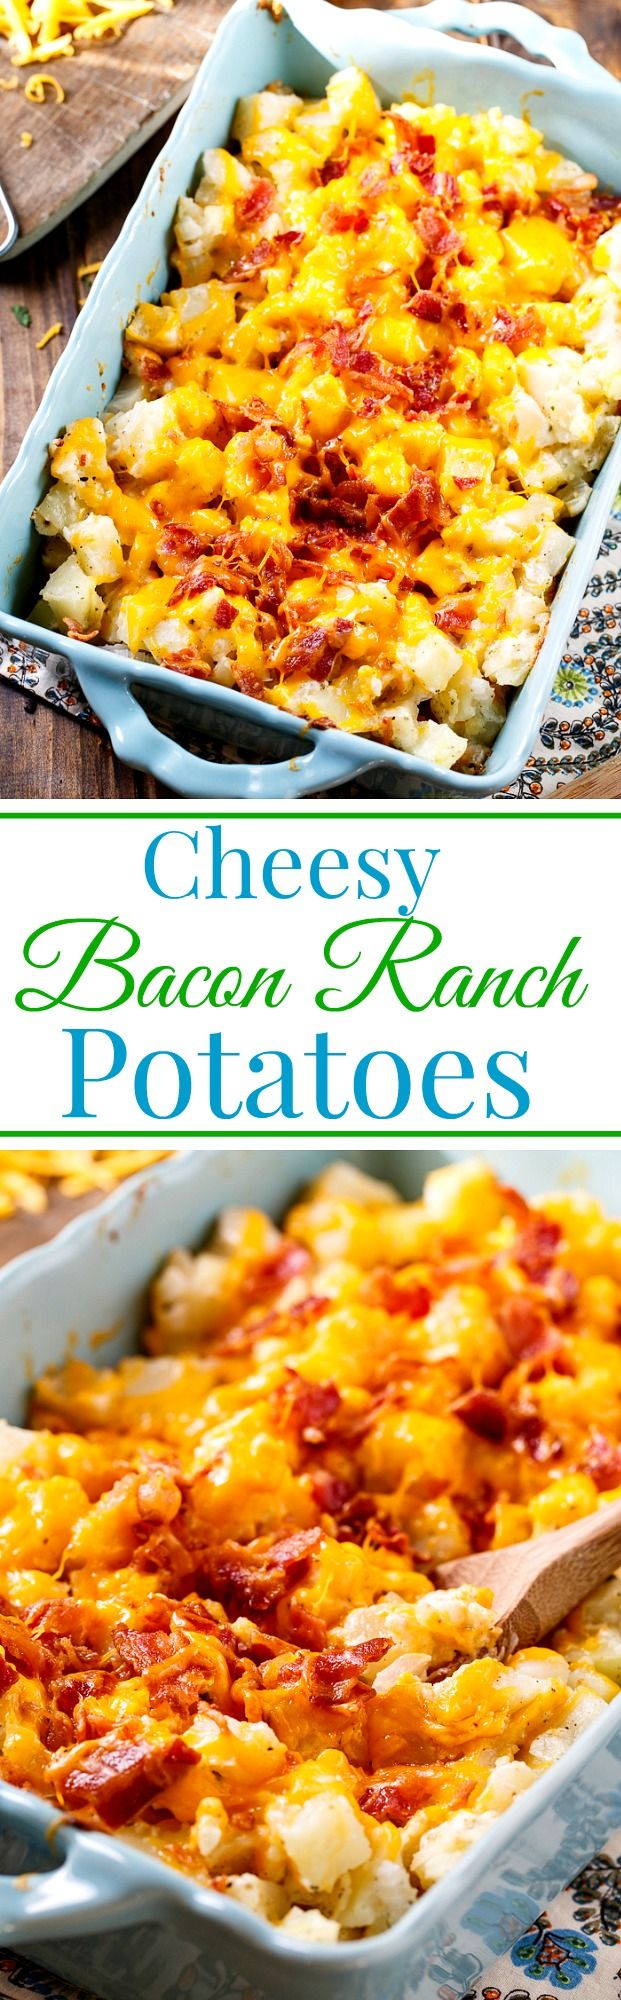 Cheesy Bacon Ranch Potatoes- these potatoes have it all!